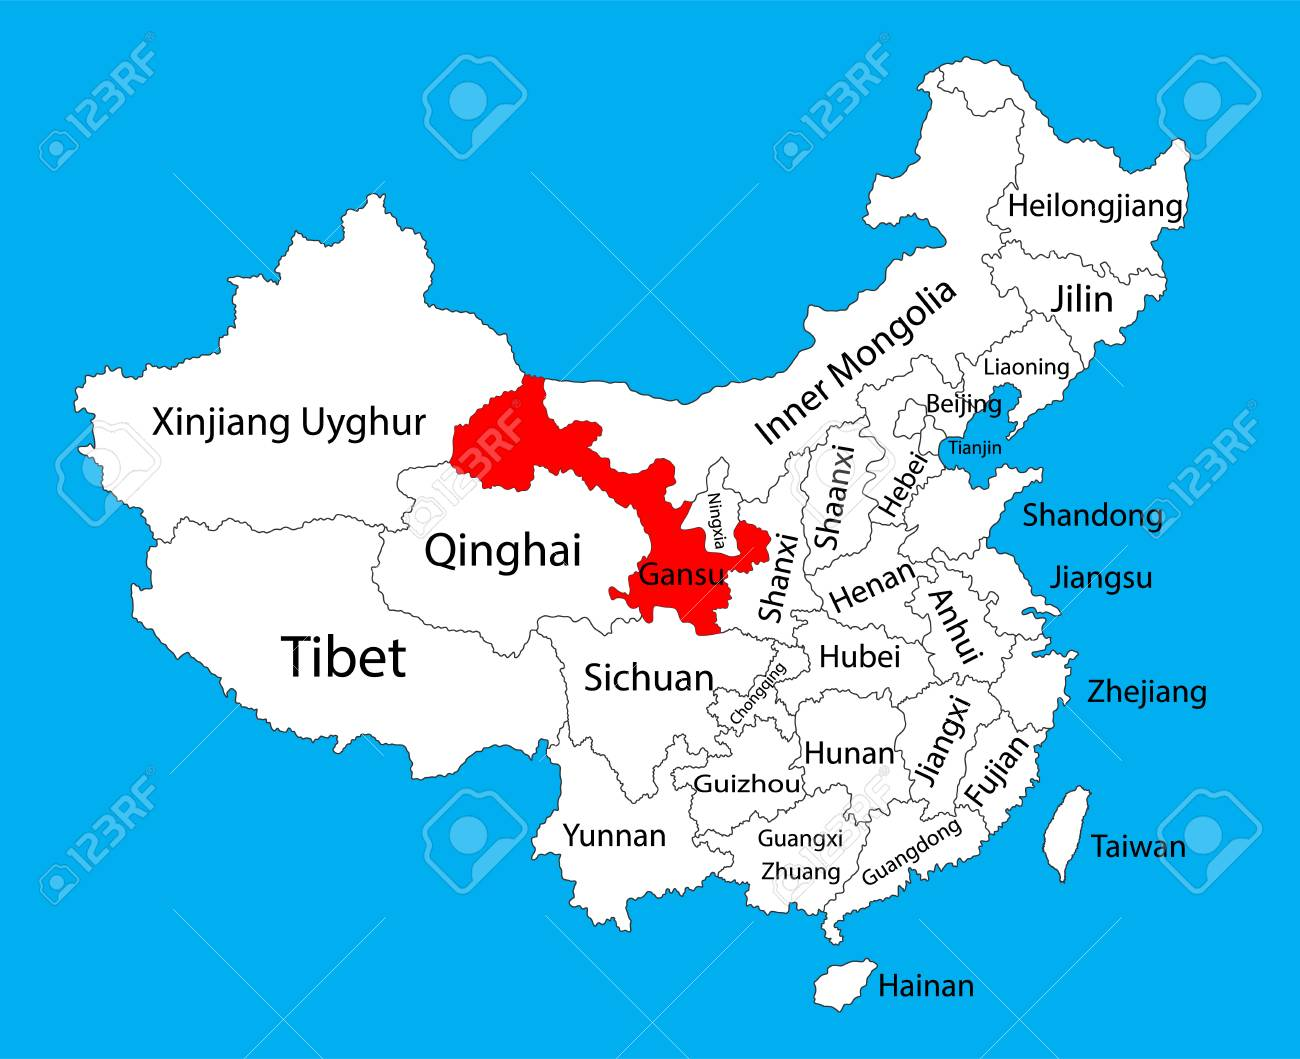 Gansu Province Map, China Vector Map Illustration Isolated On Background.  Editable China Map Vector